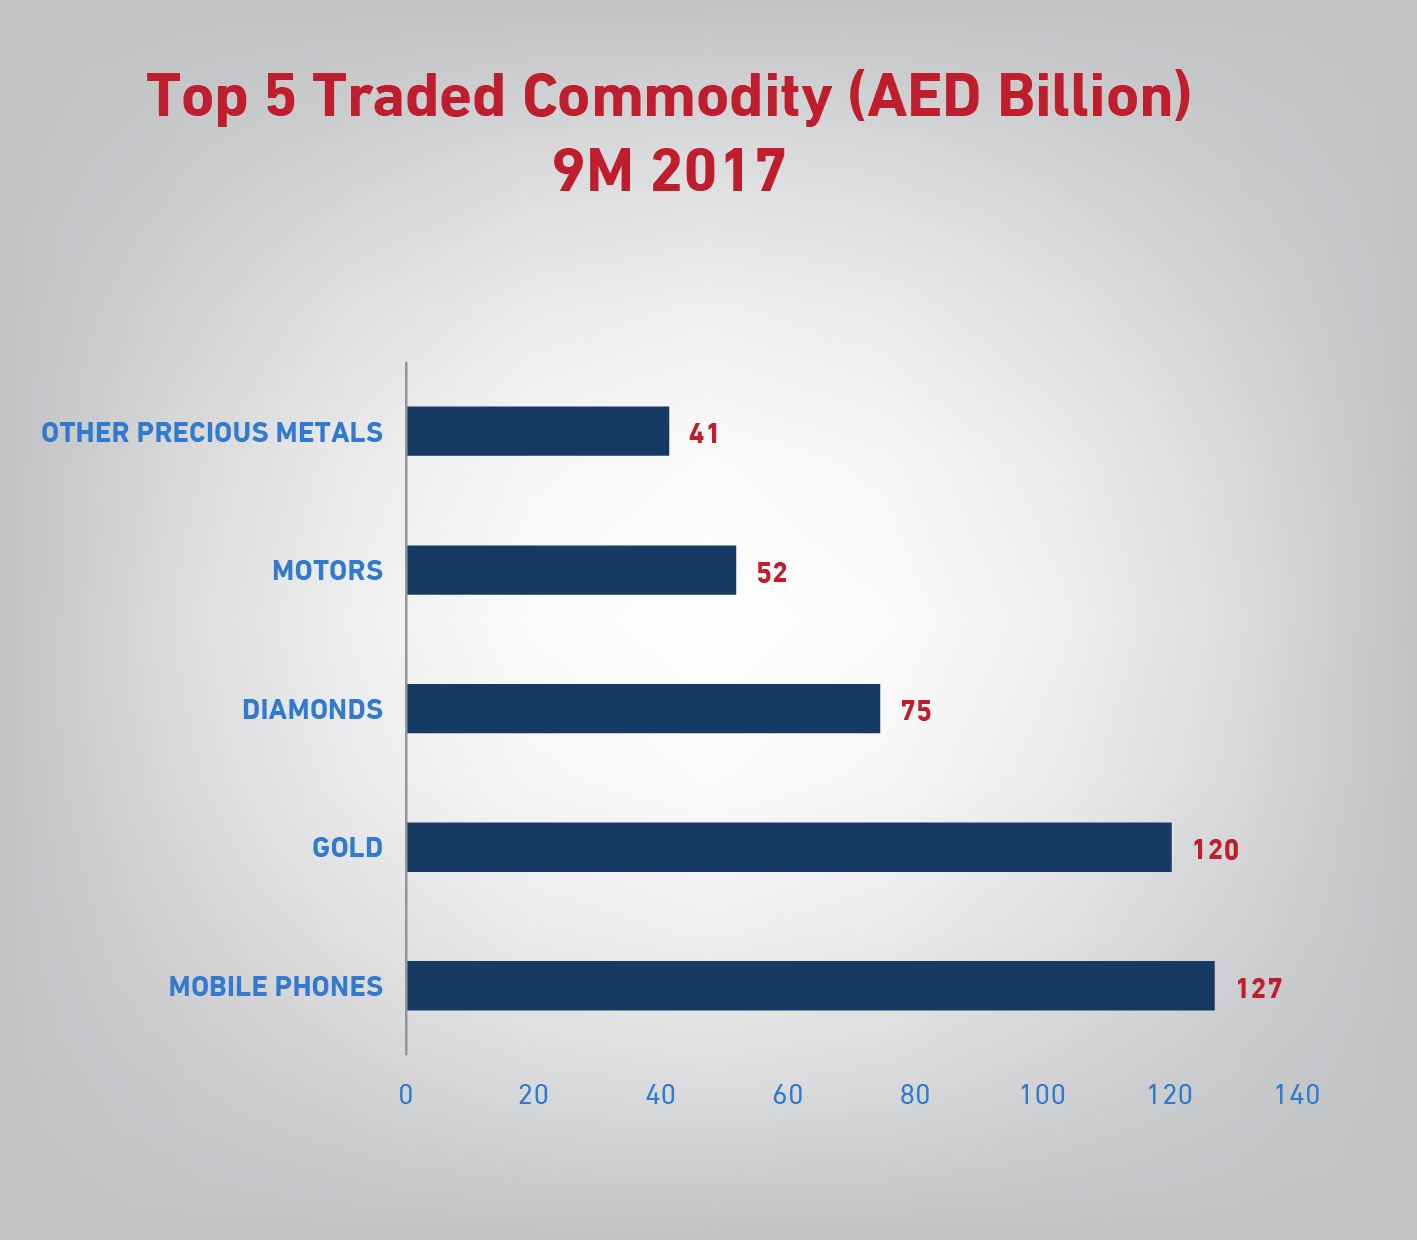 dubai non-oil foreign trade increases by 13% year-on-year in q3 2017 b